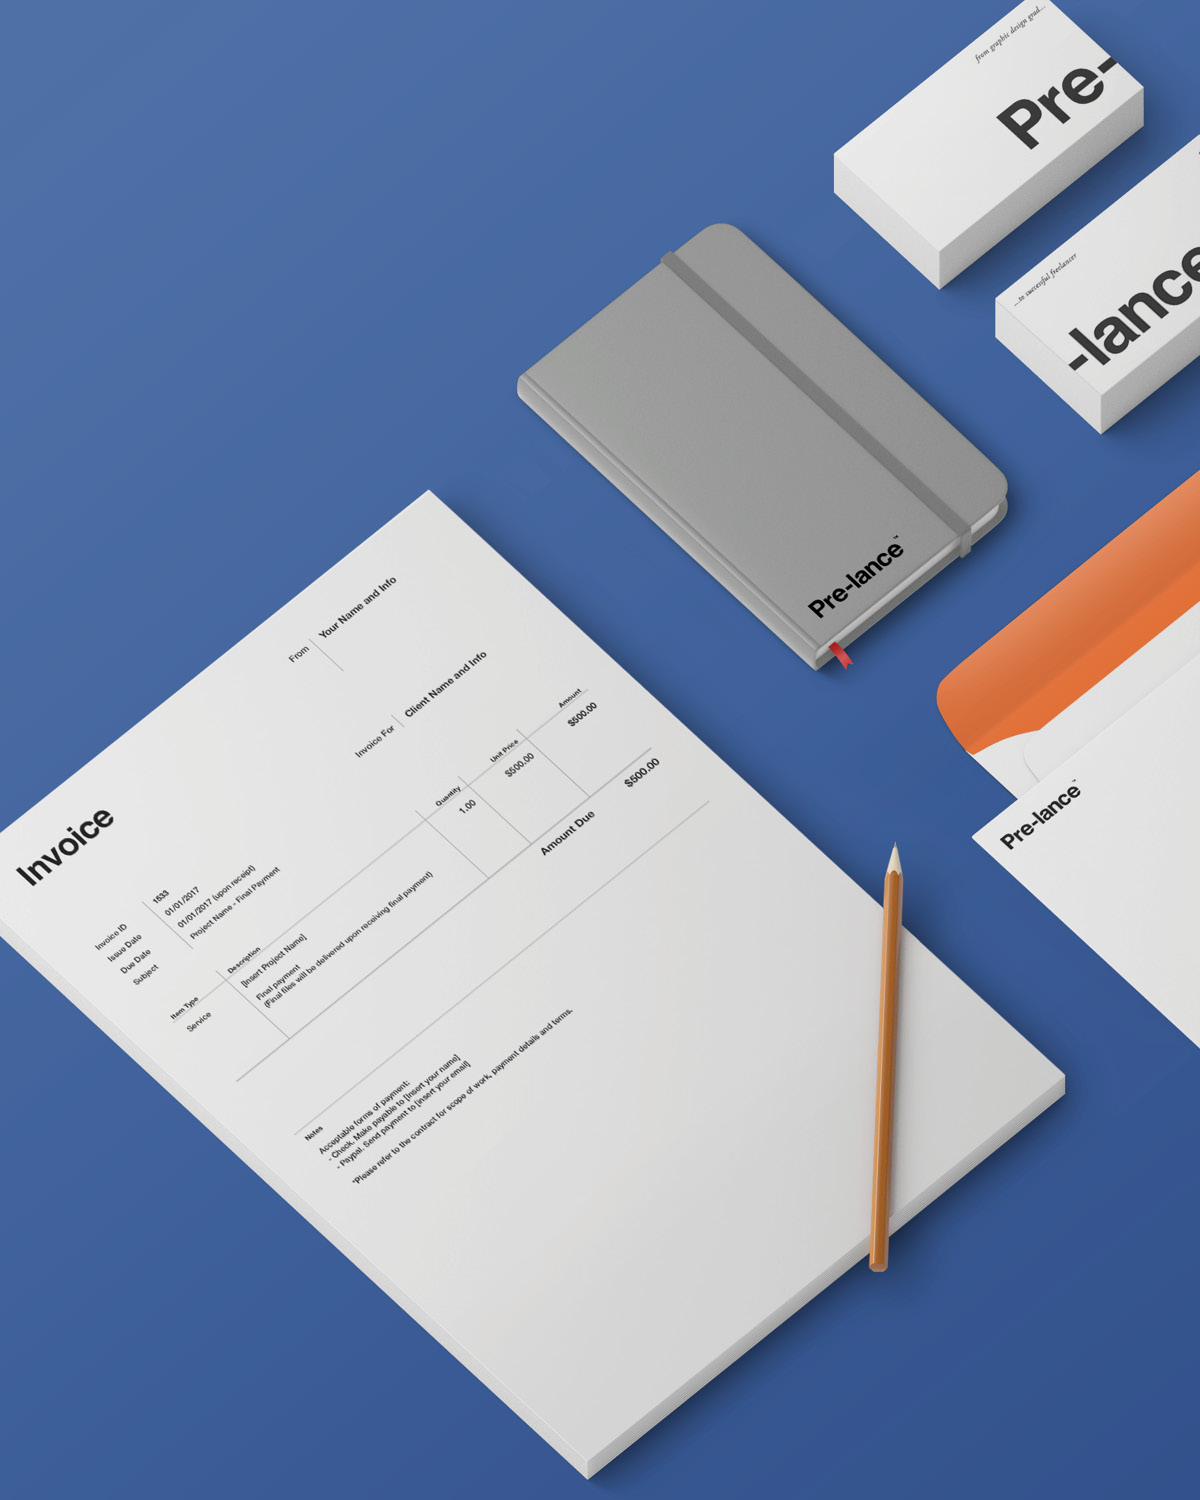 pre-lance toolkit templates for freelancers